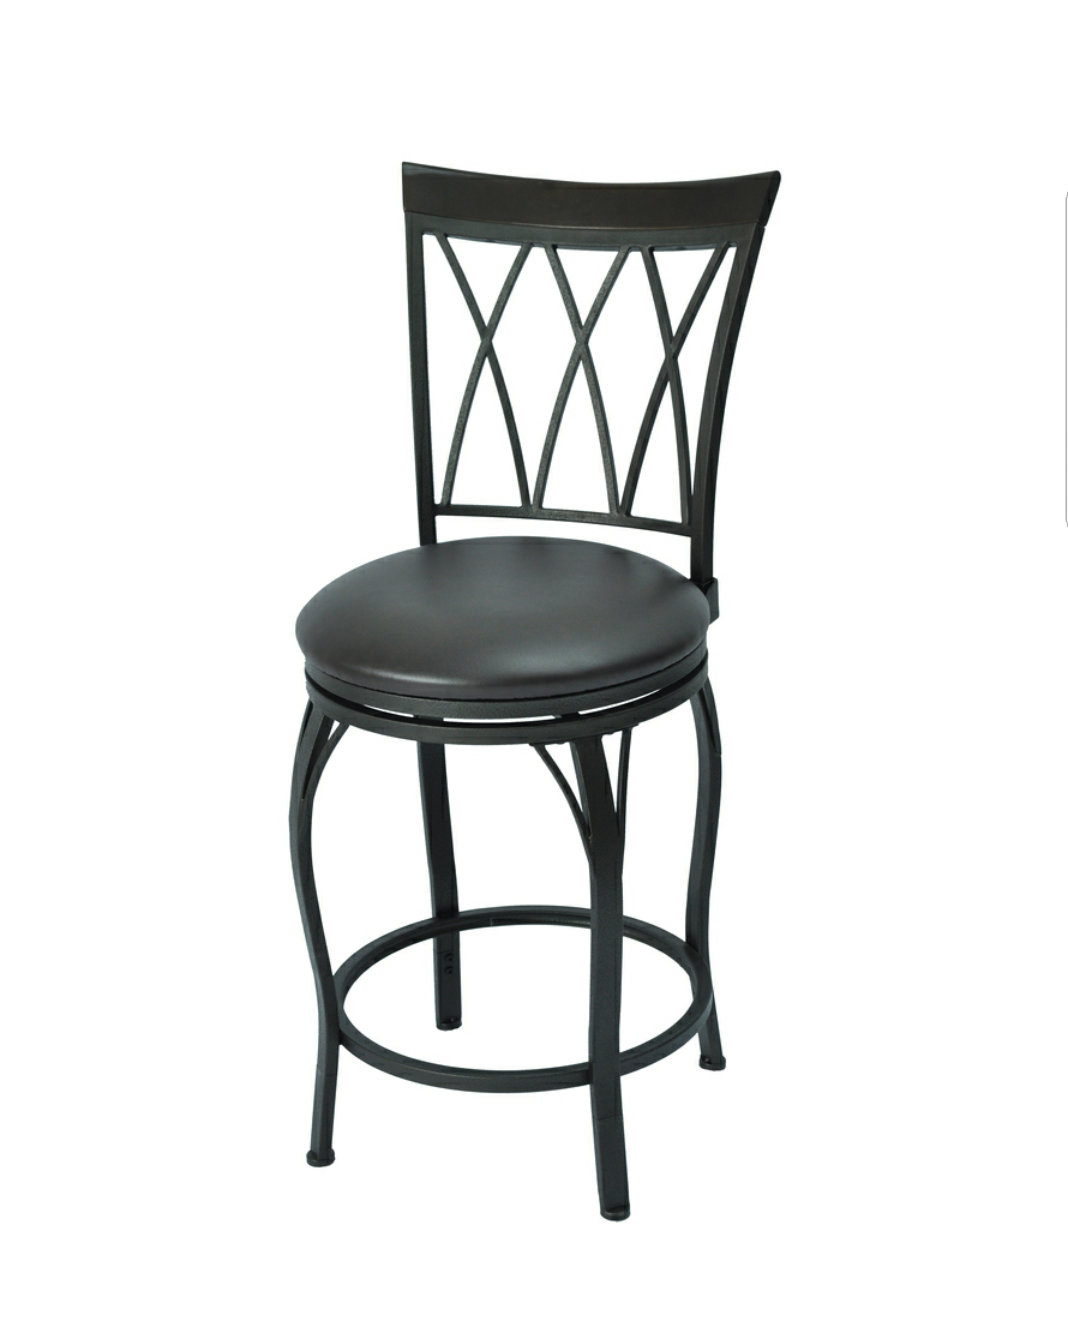 Brand New Bar Stool...Never Used Still in box.